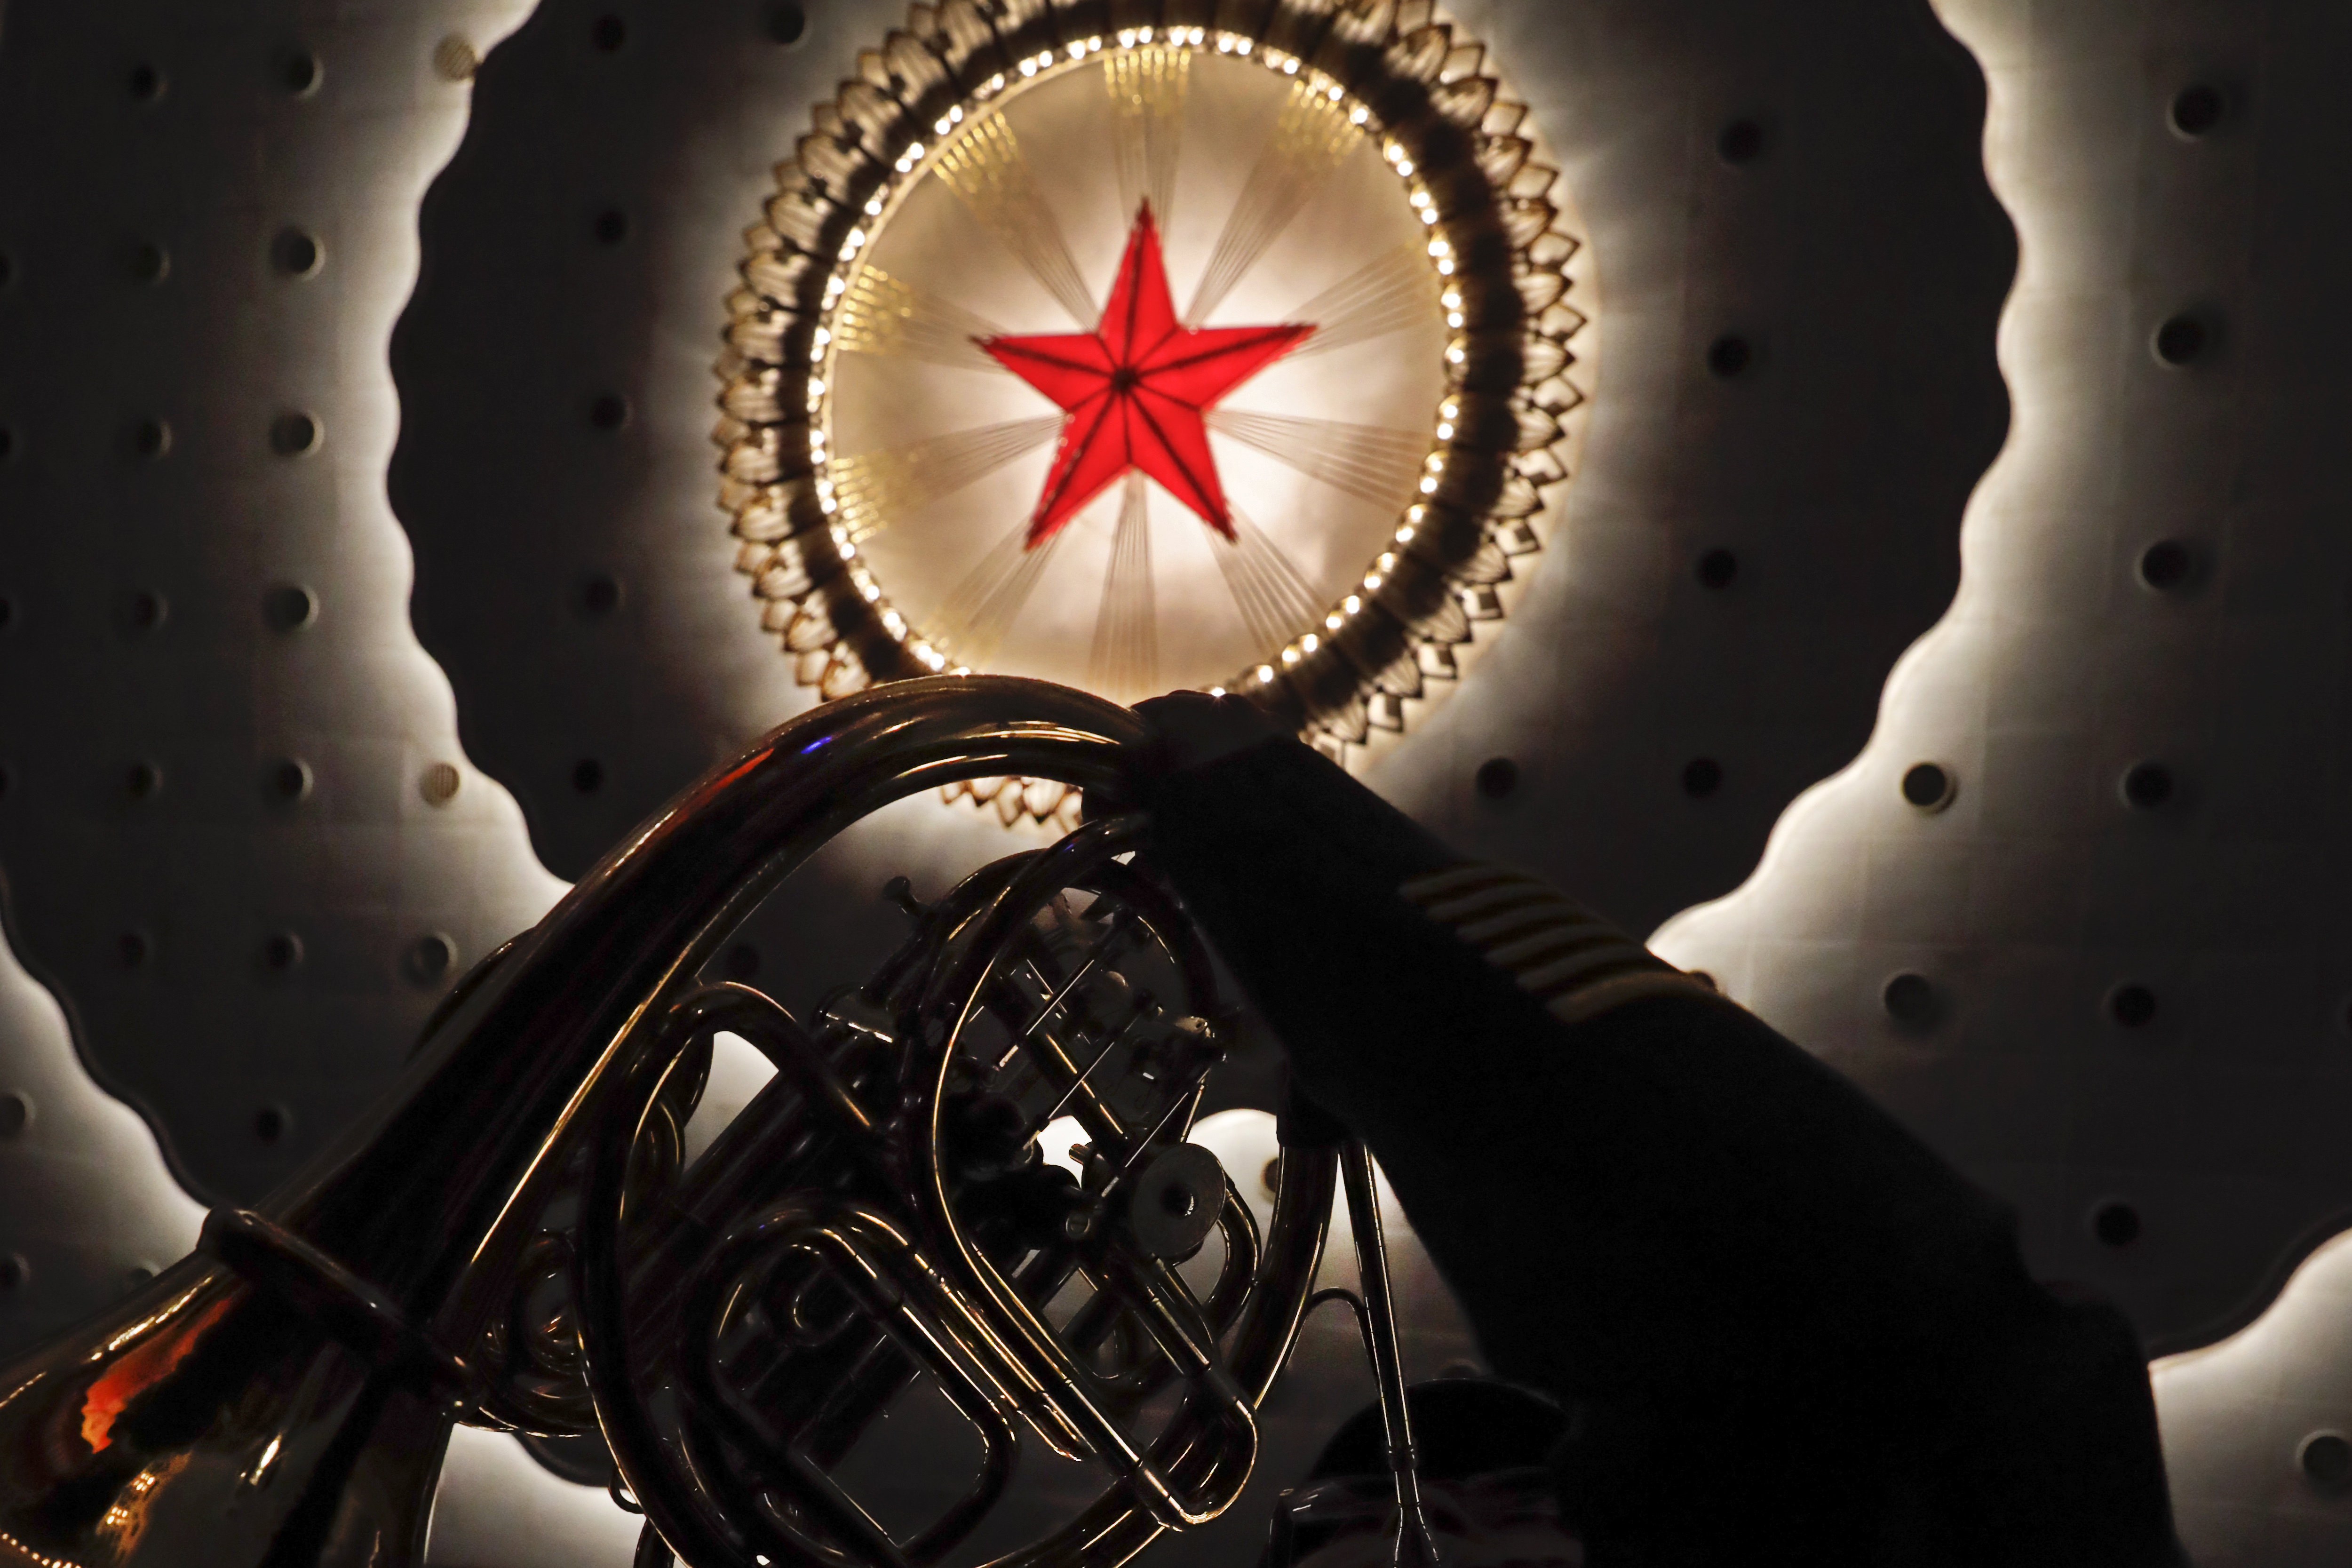 A military band member rehearses ahead of the closing session of the Chinese People's Political Consultative Conference (CPPCC) at the Great Hall of the People in Beijing, Wednesday, March 13, 2019. (AP Photo/Andy Wong)